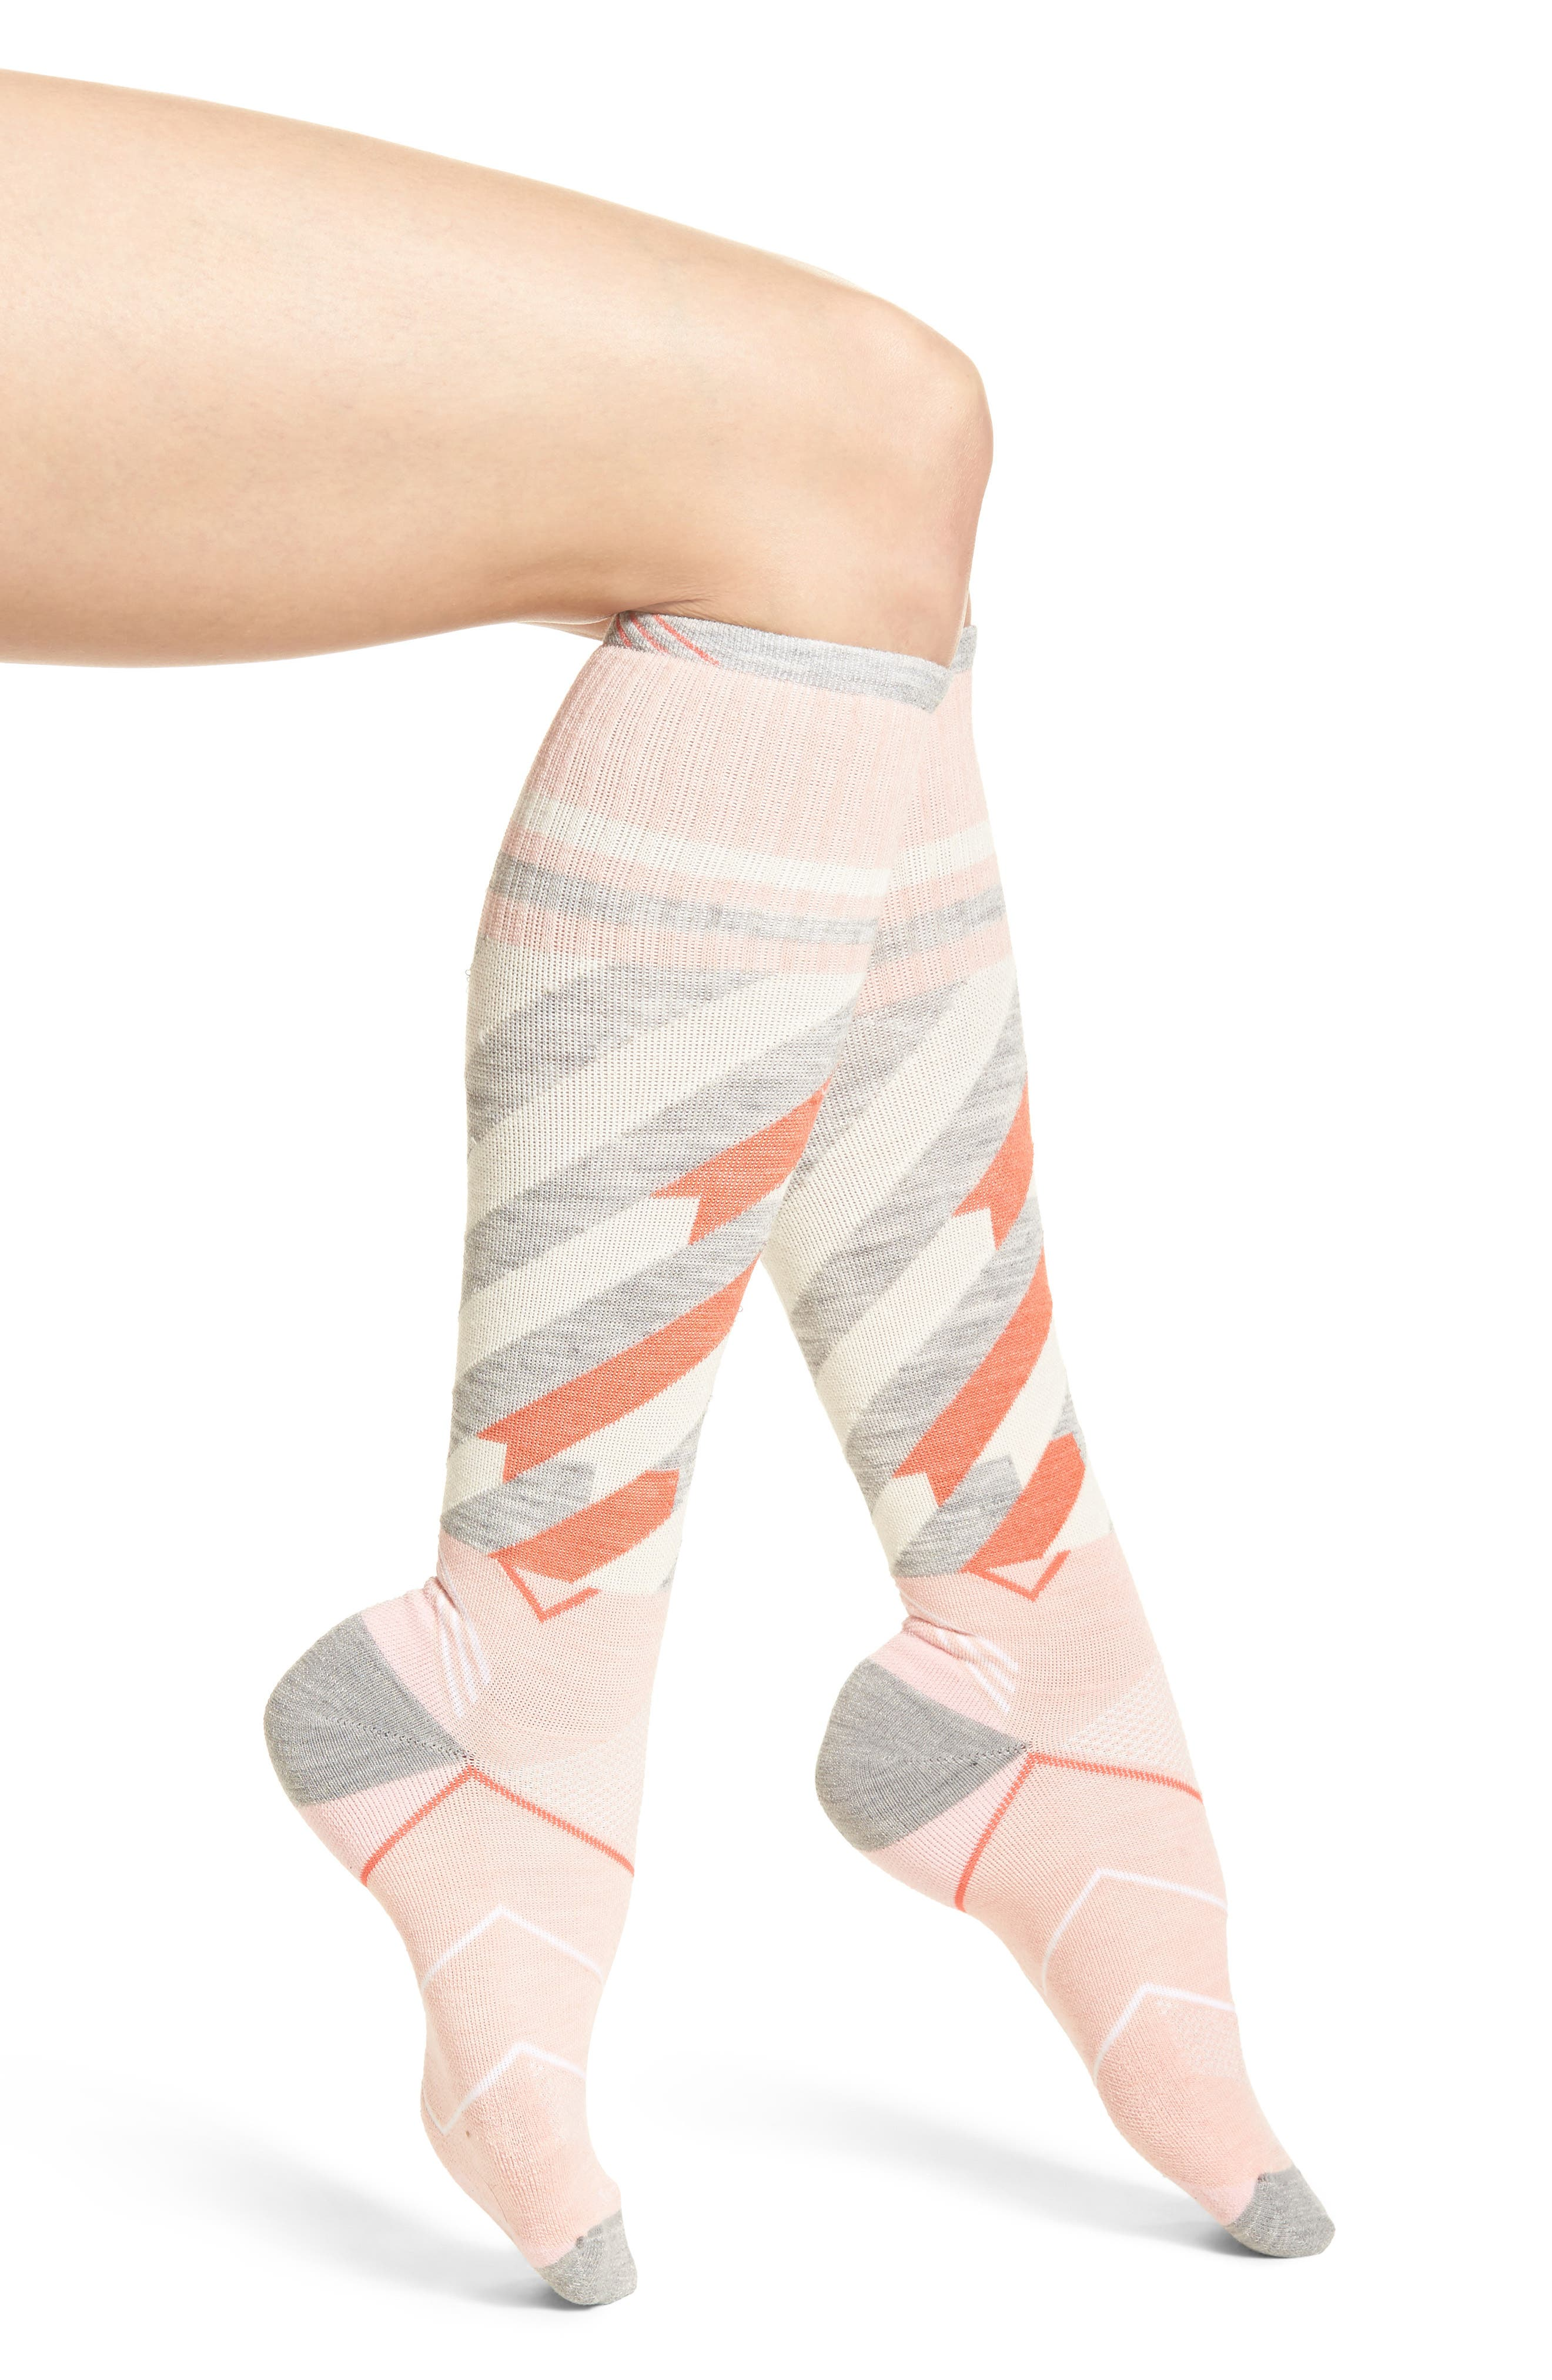 Cyclone Compression Knee Socks,                         Main,                         color, Rose